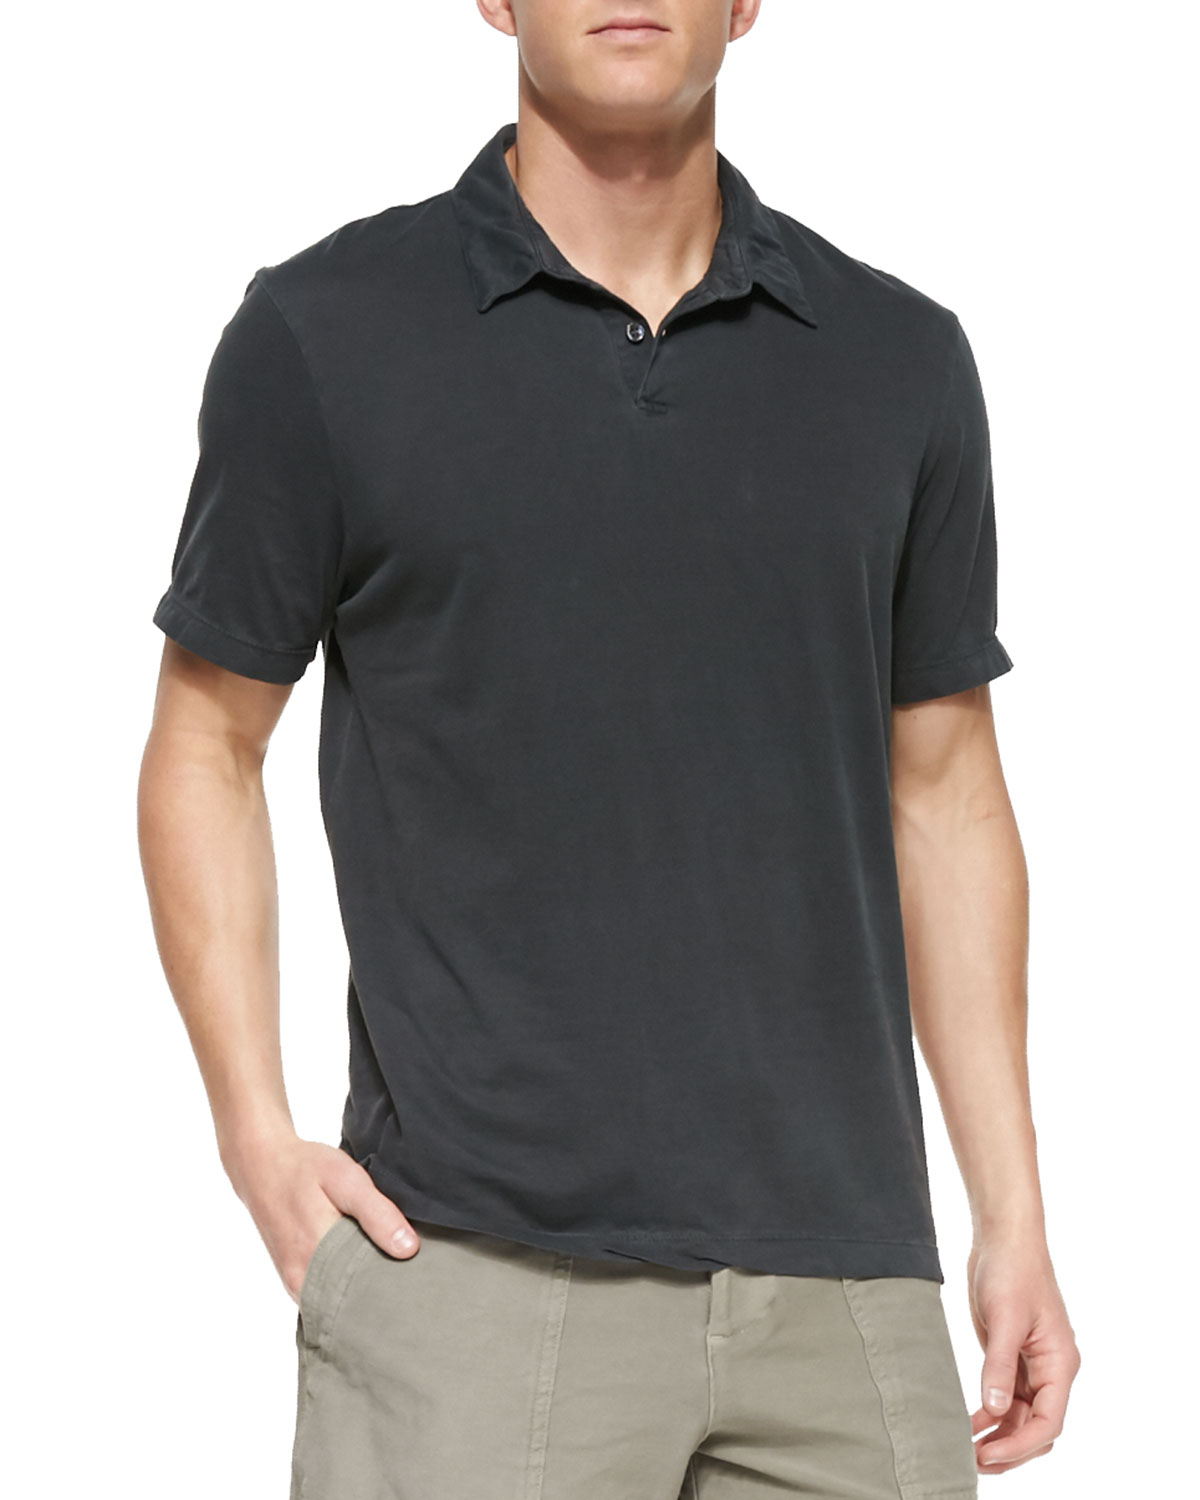 Mens Sueded Jersey Polo Shirt, Charcoal   James Perse   Charcoal (4)